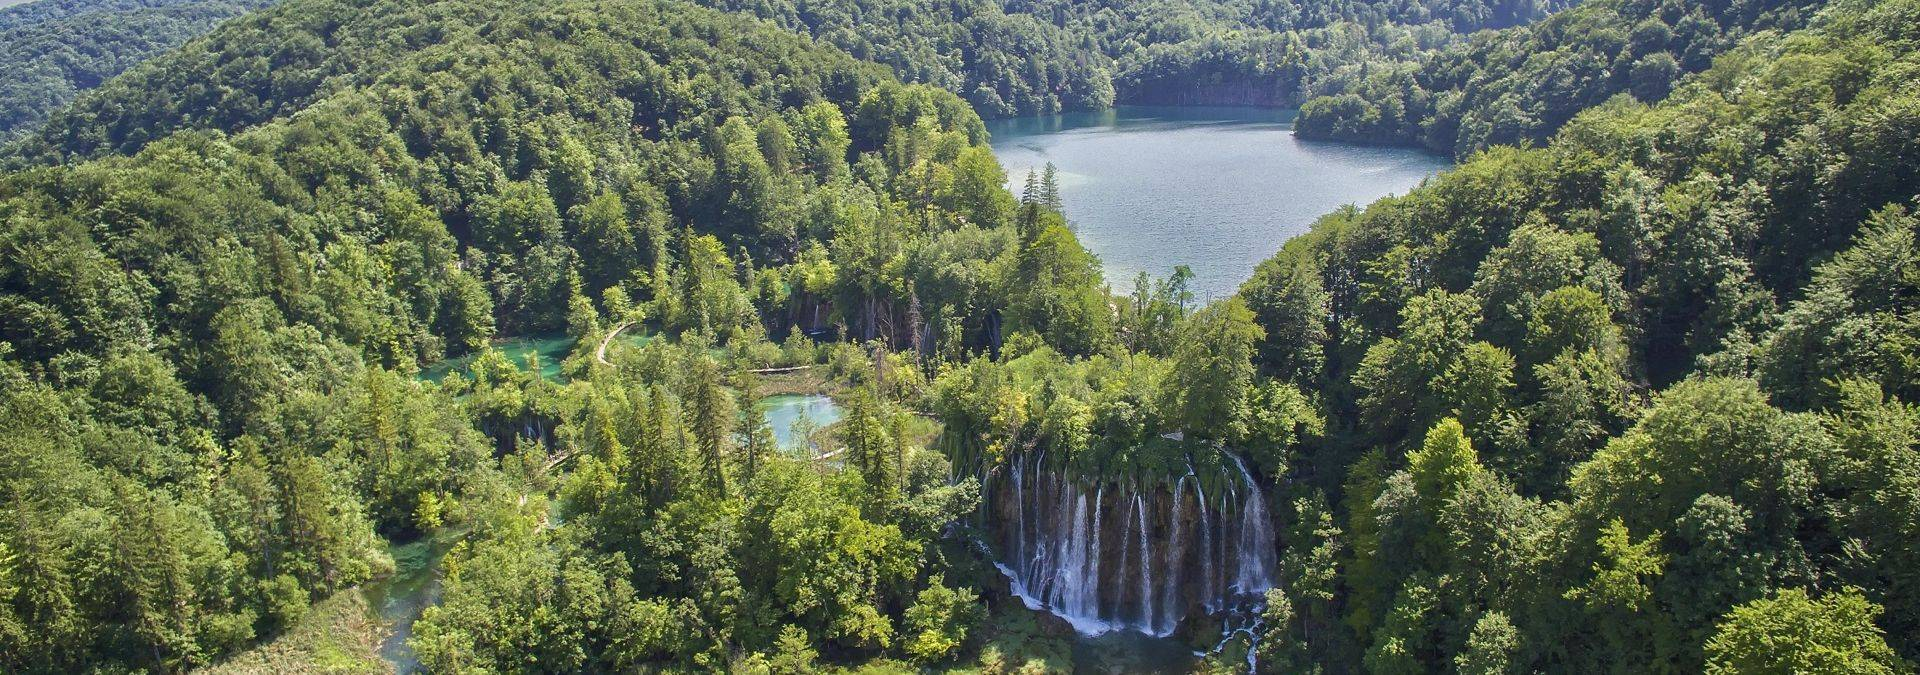 Plitvice Lakes  Credit Ivo Biocina And Croatian National Tourist Board.